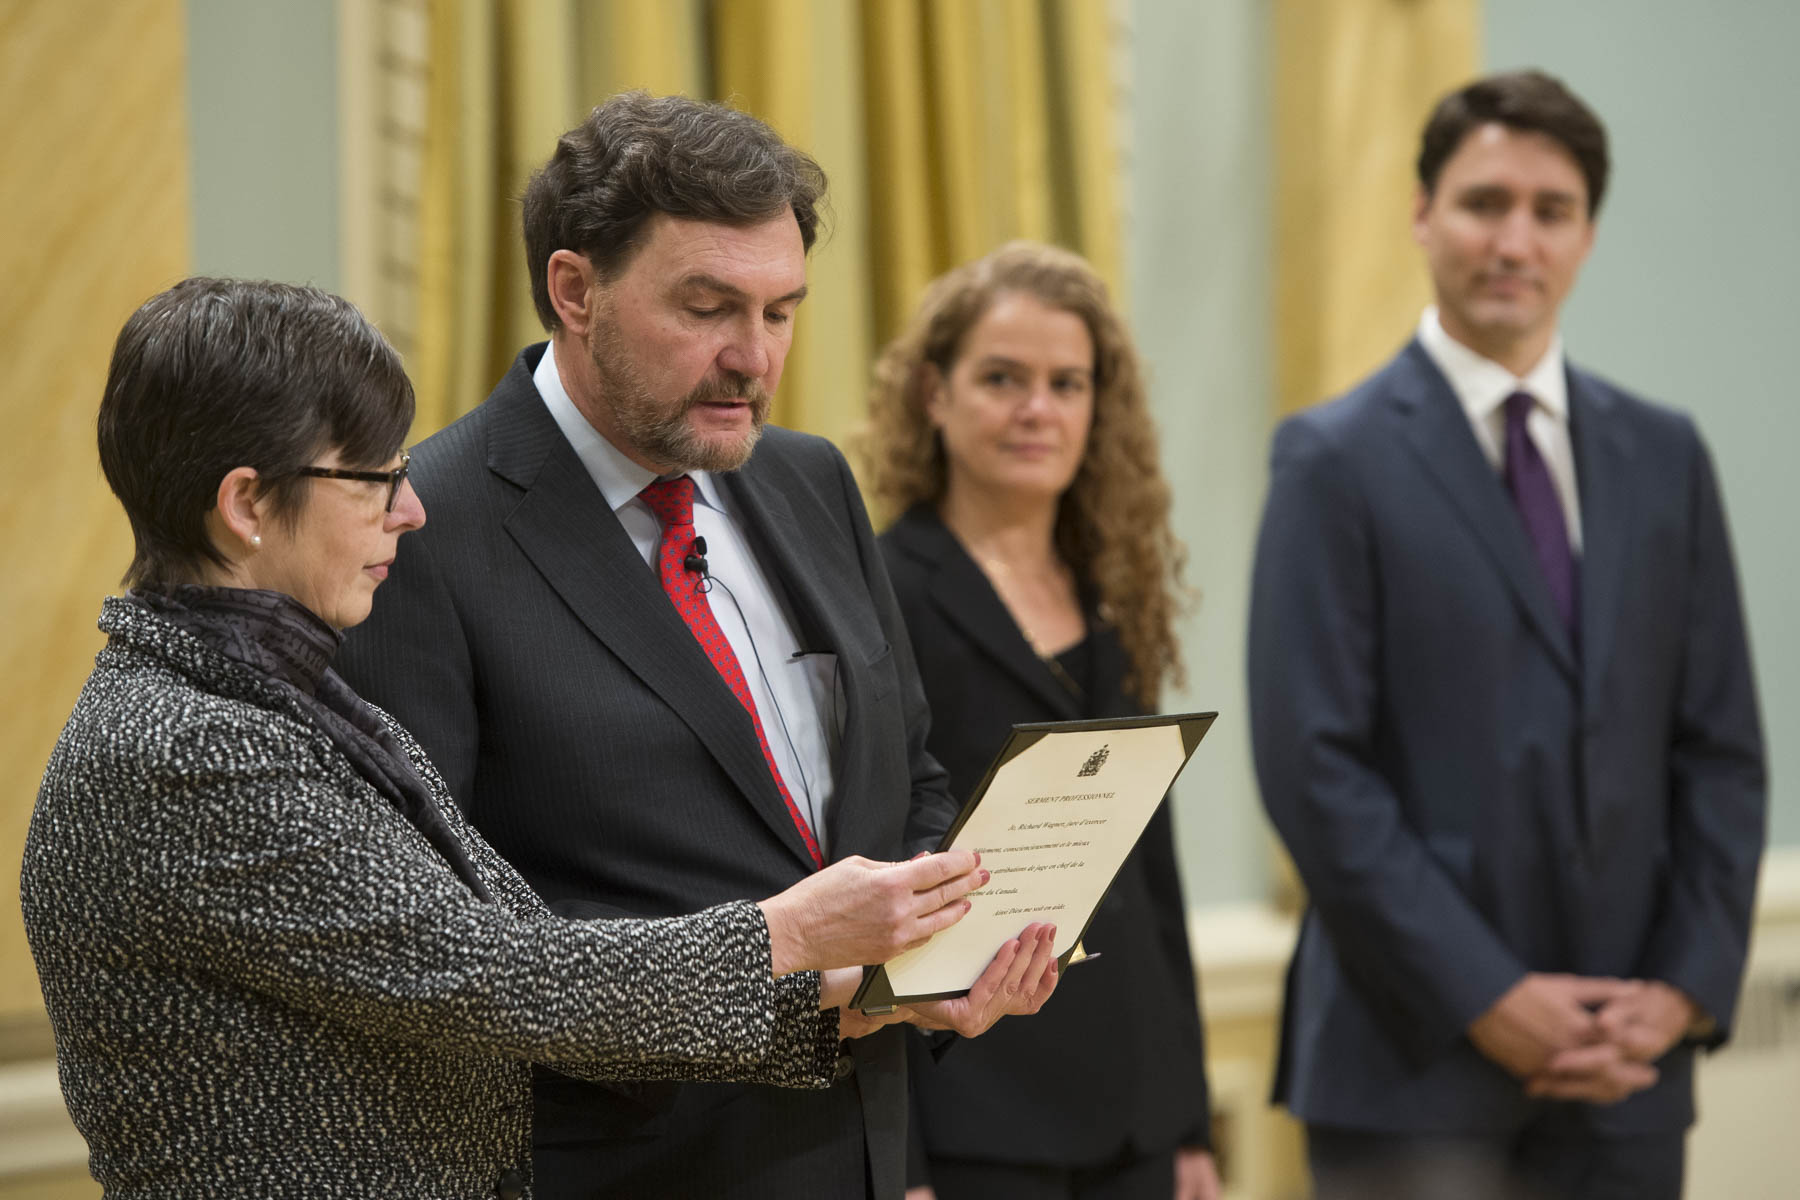 In the presence of Her Excellency, Prime Minister Justin Trudeau, ministers and other distinguished guests, Mr. Wagner took the Oath of Office, the Oath of Allegiance and the Oath of the Members of the Privy Council.